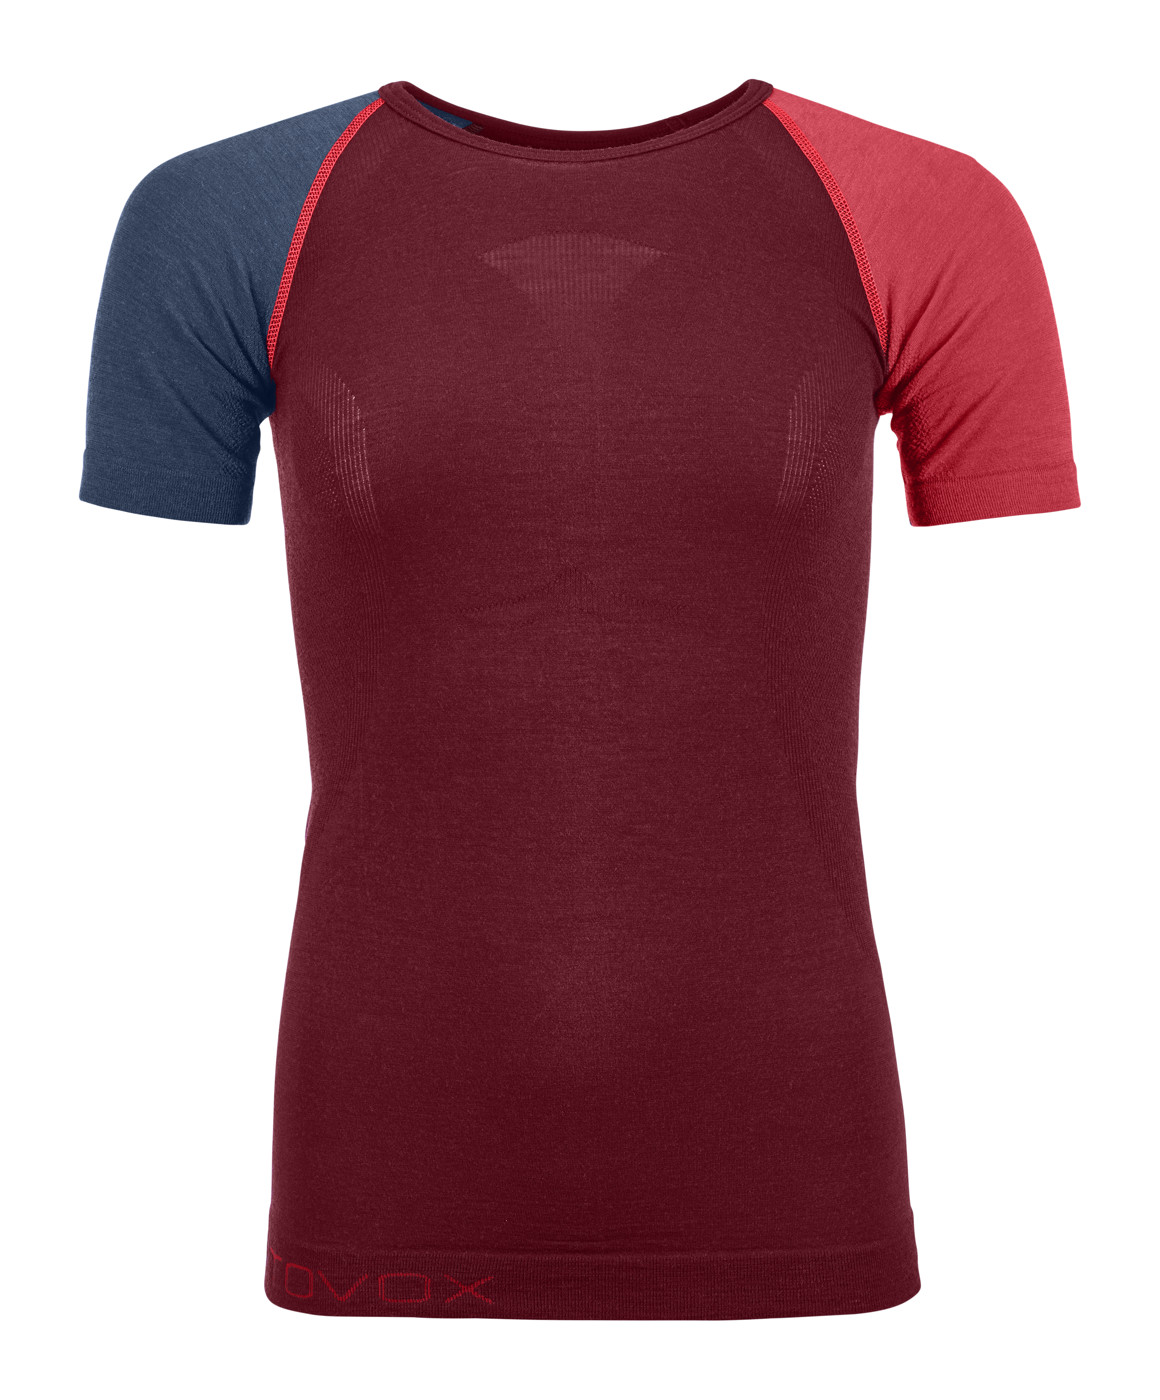 ORTOVOX 120 COMP LIGHT SHORT SLEEVE W - Damen